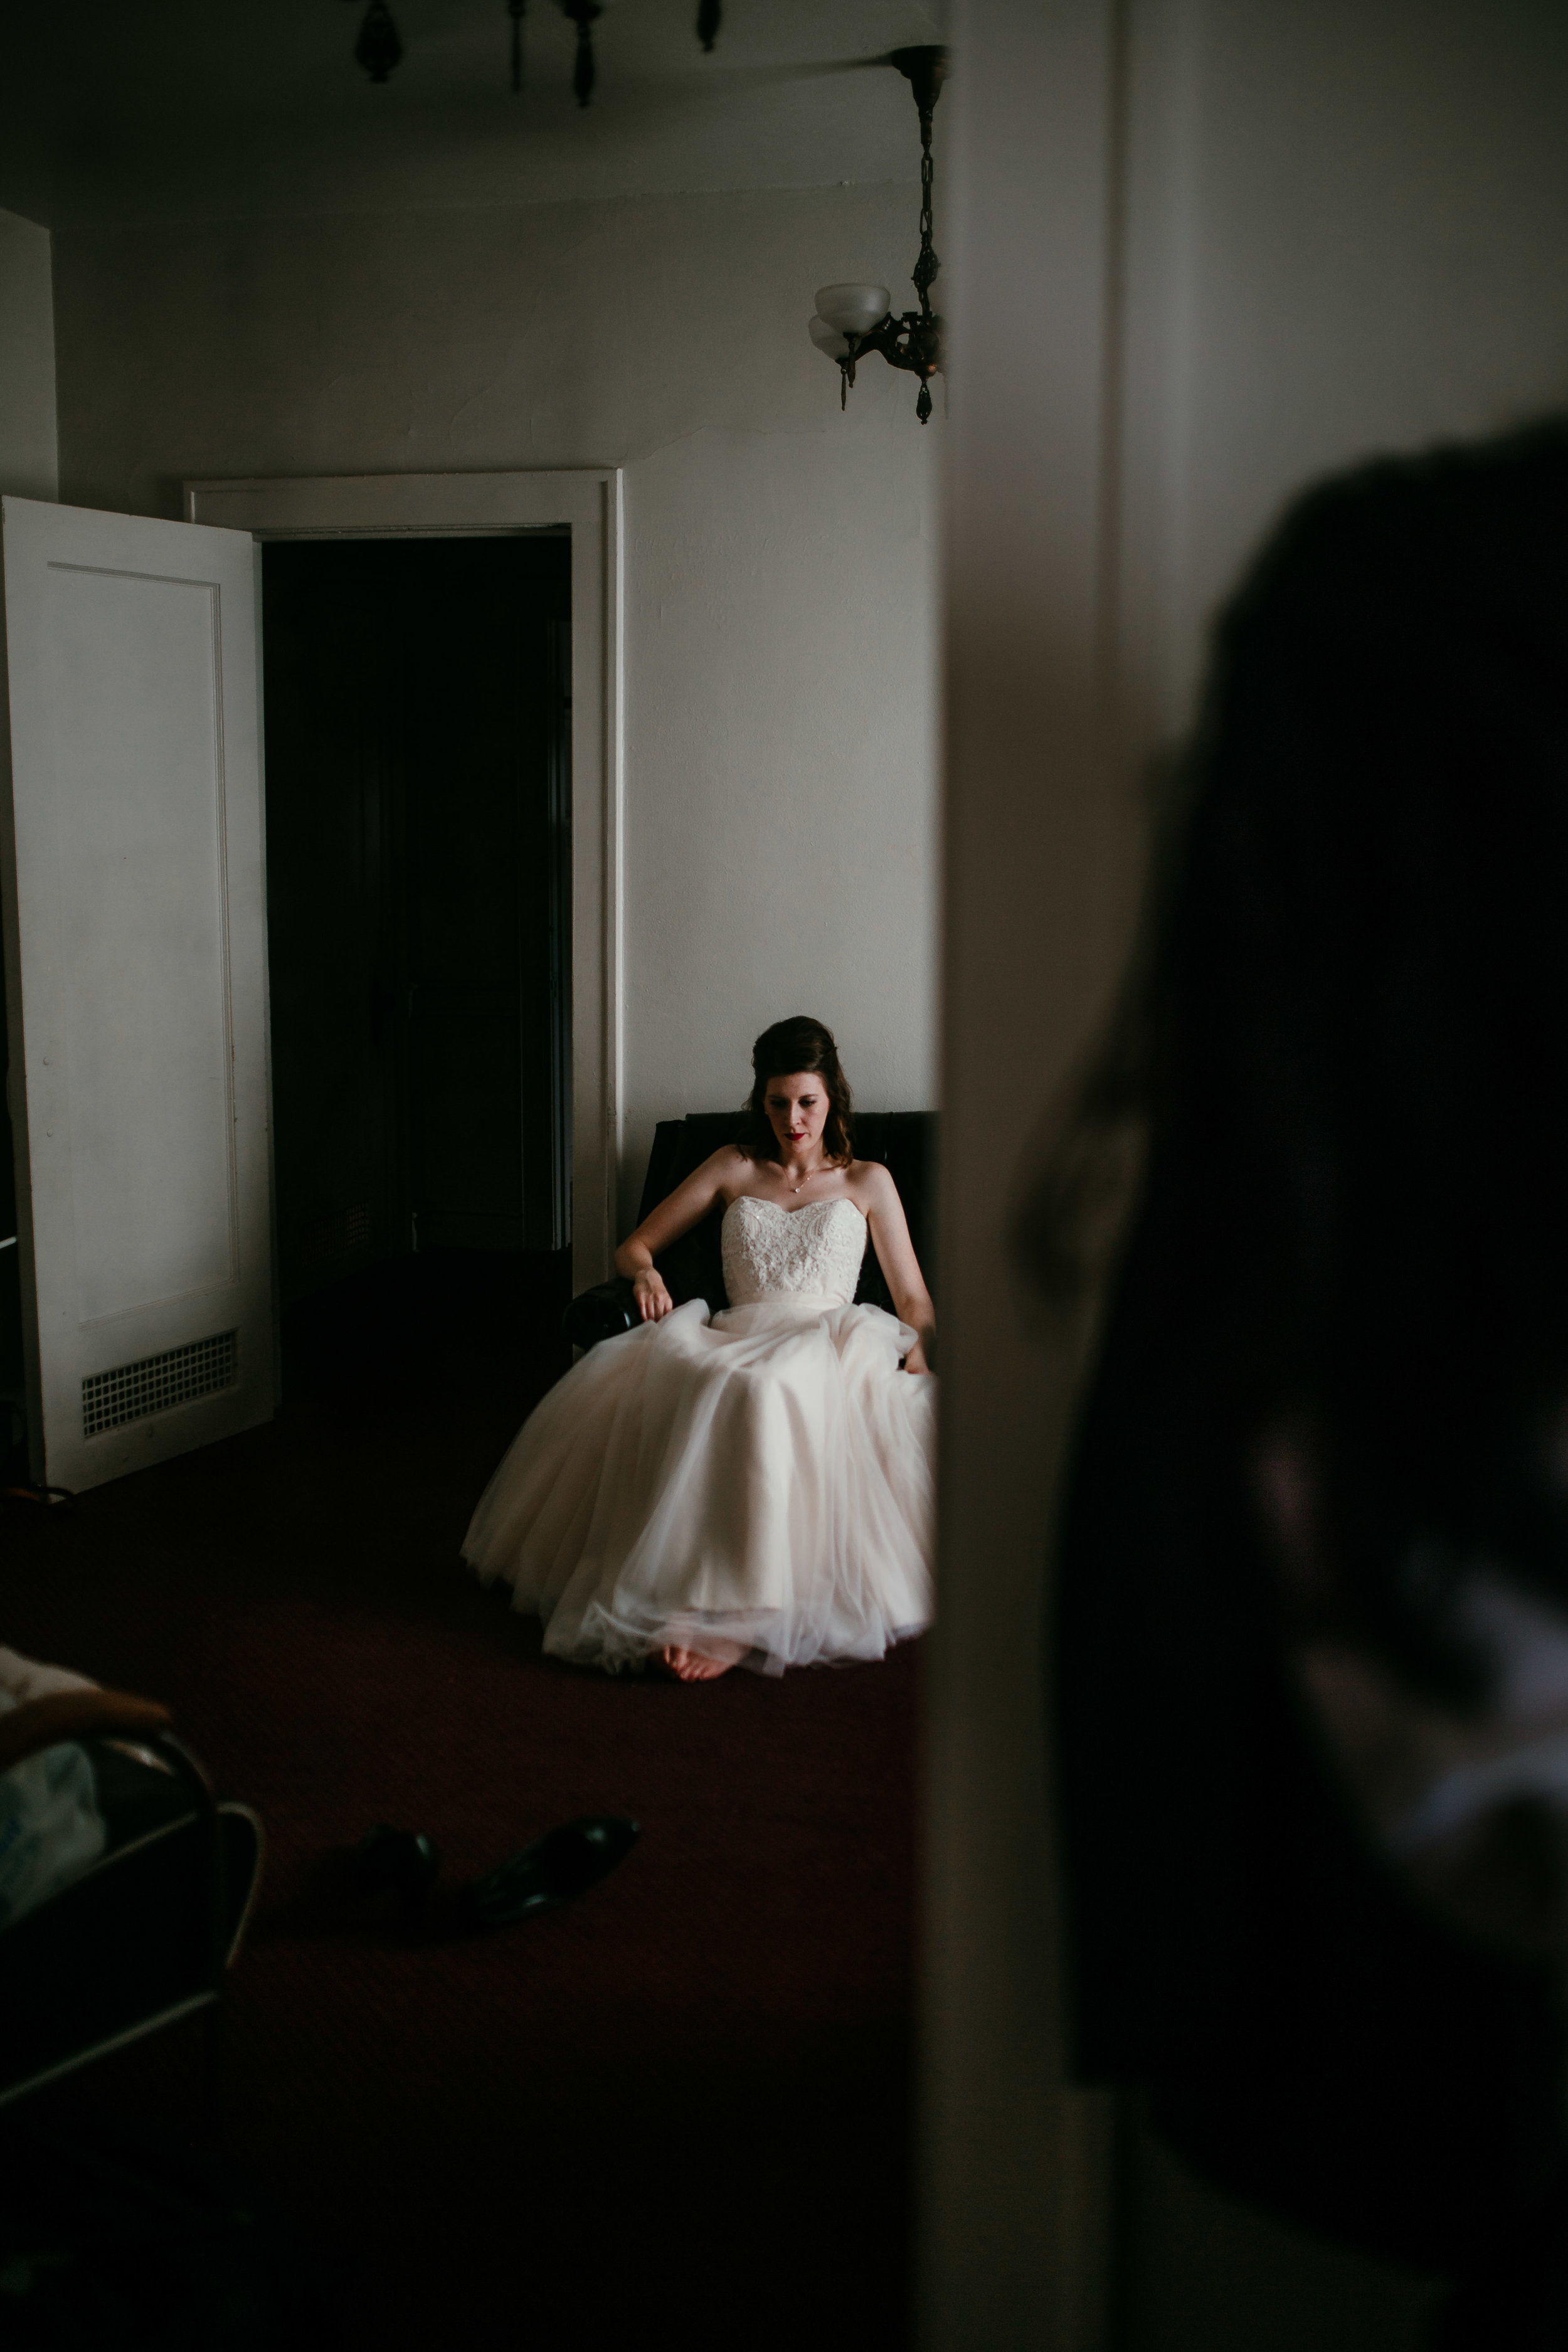 Bride waiting to walk down the aisle | Shelbie & Jospeh's Summer Love Story : Kansas City Wedding | Hanna Hill Photography